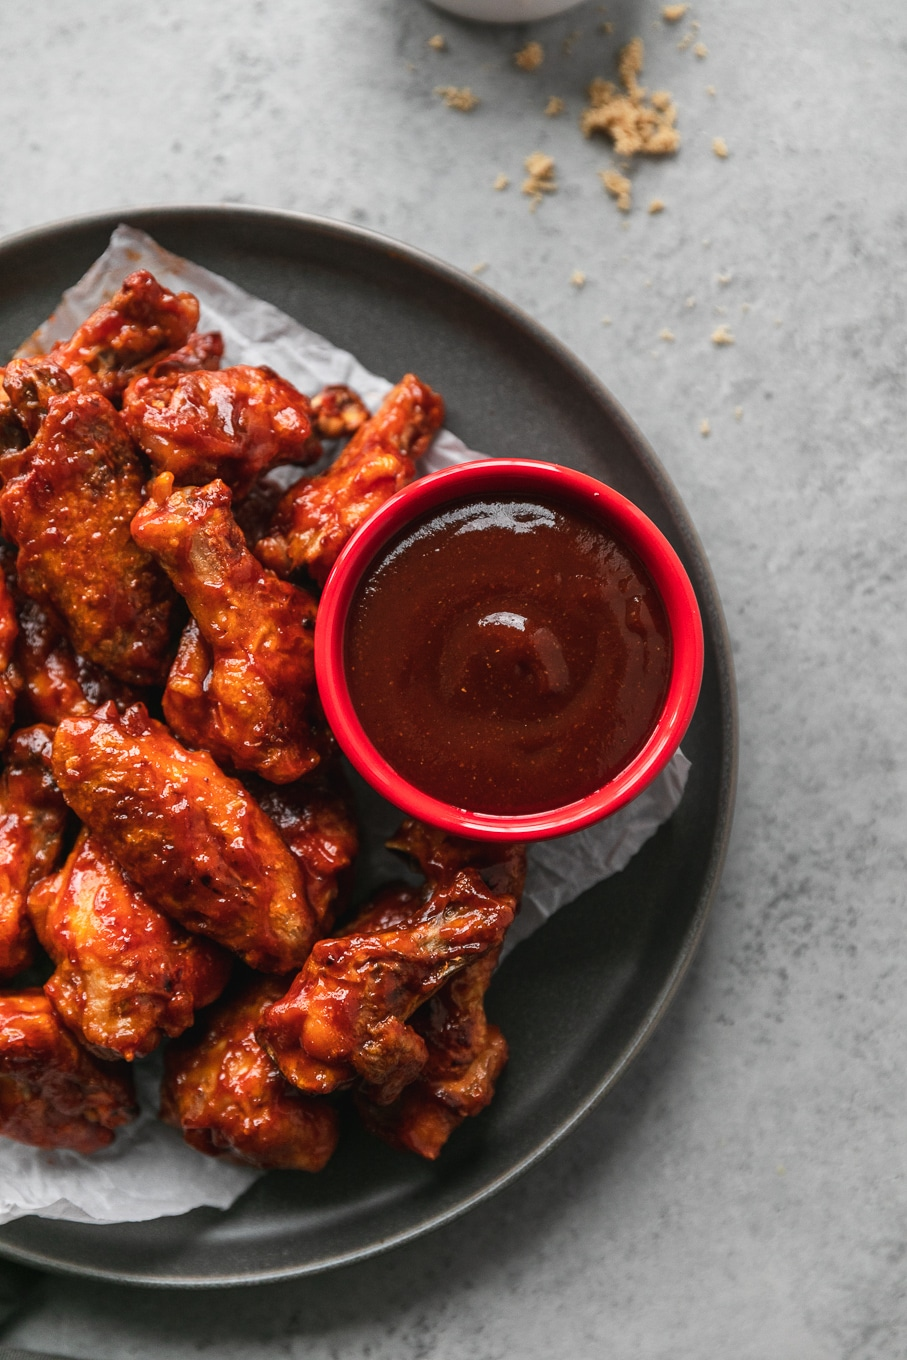 Overhead close up shot of a red ramekin filled with BBQ sauce on a grey plate with wings